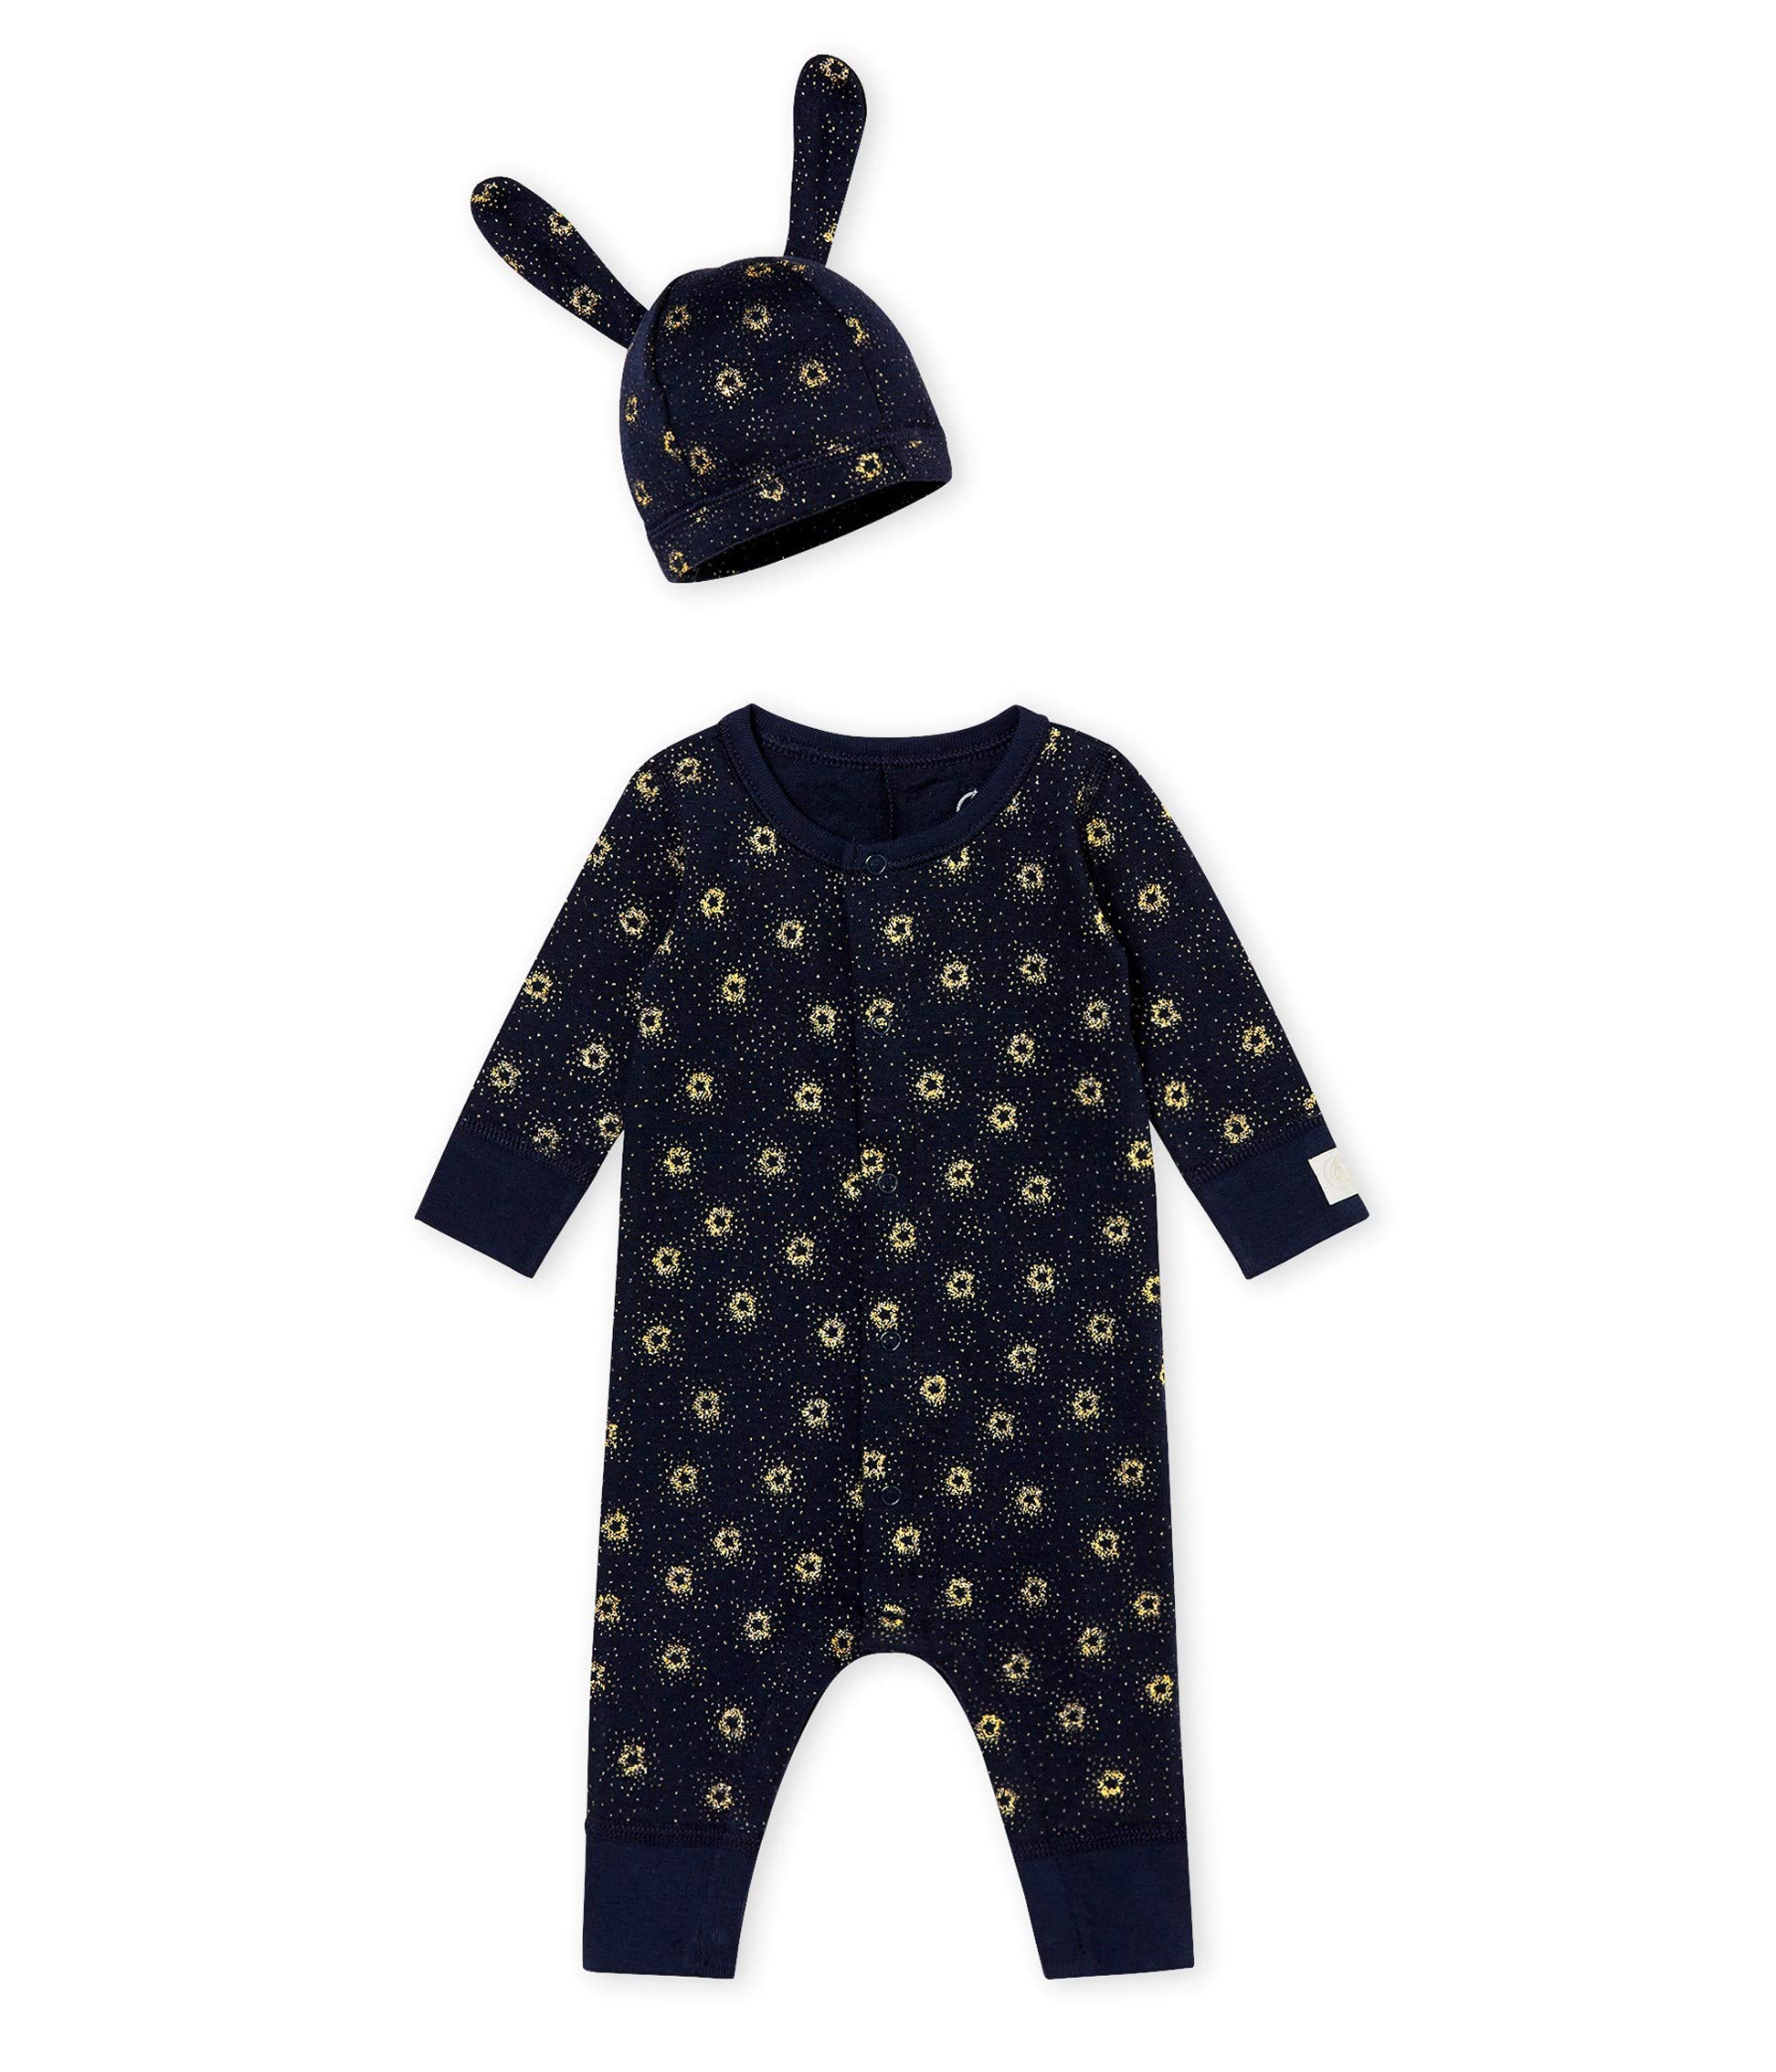 Baby Layette Set Navy Metallic Gold Print Unisex by Petit Bateau